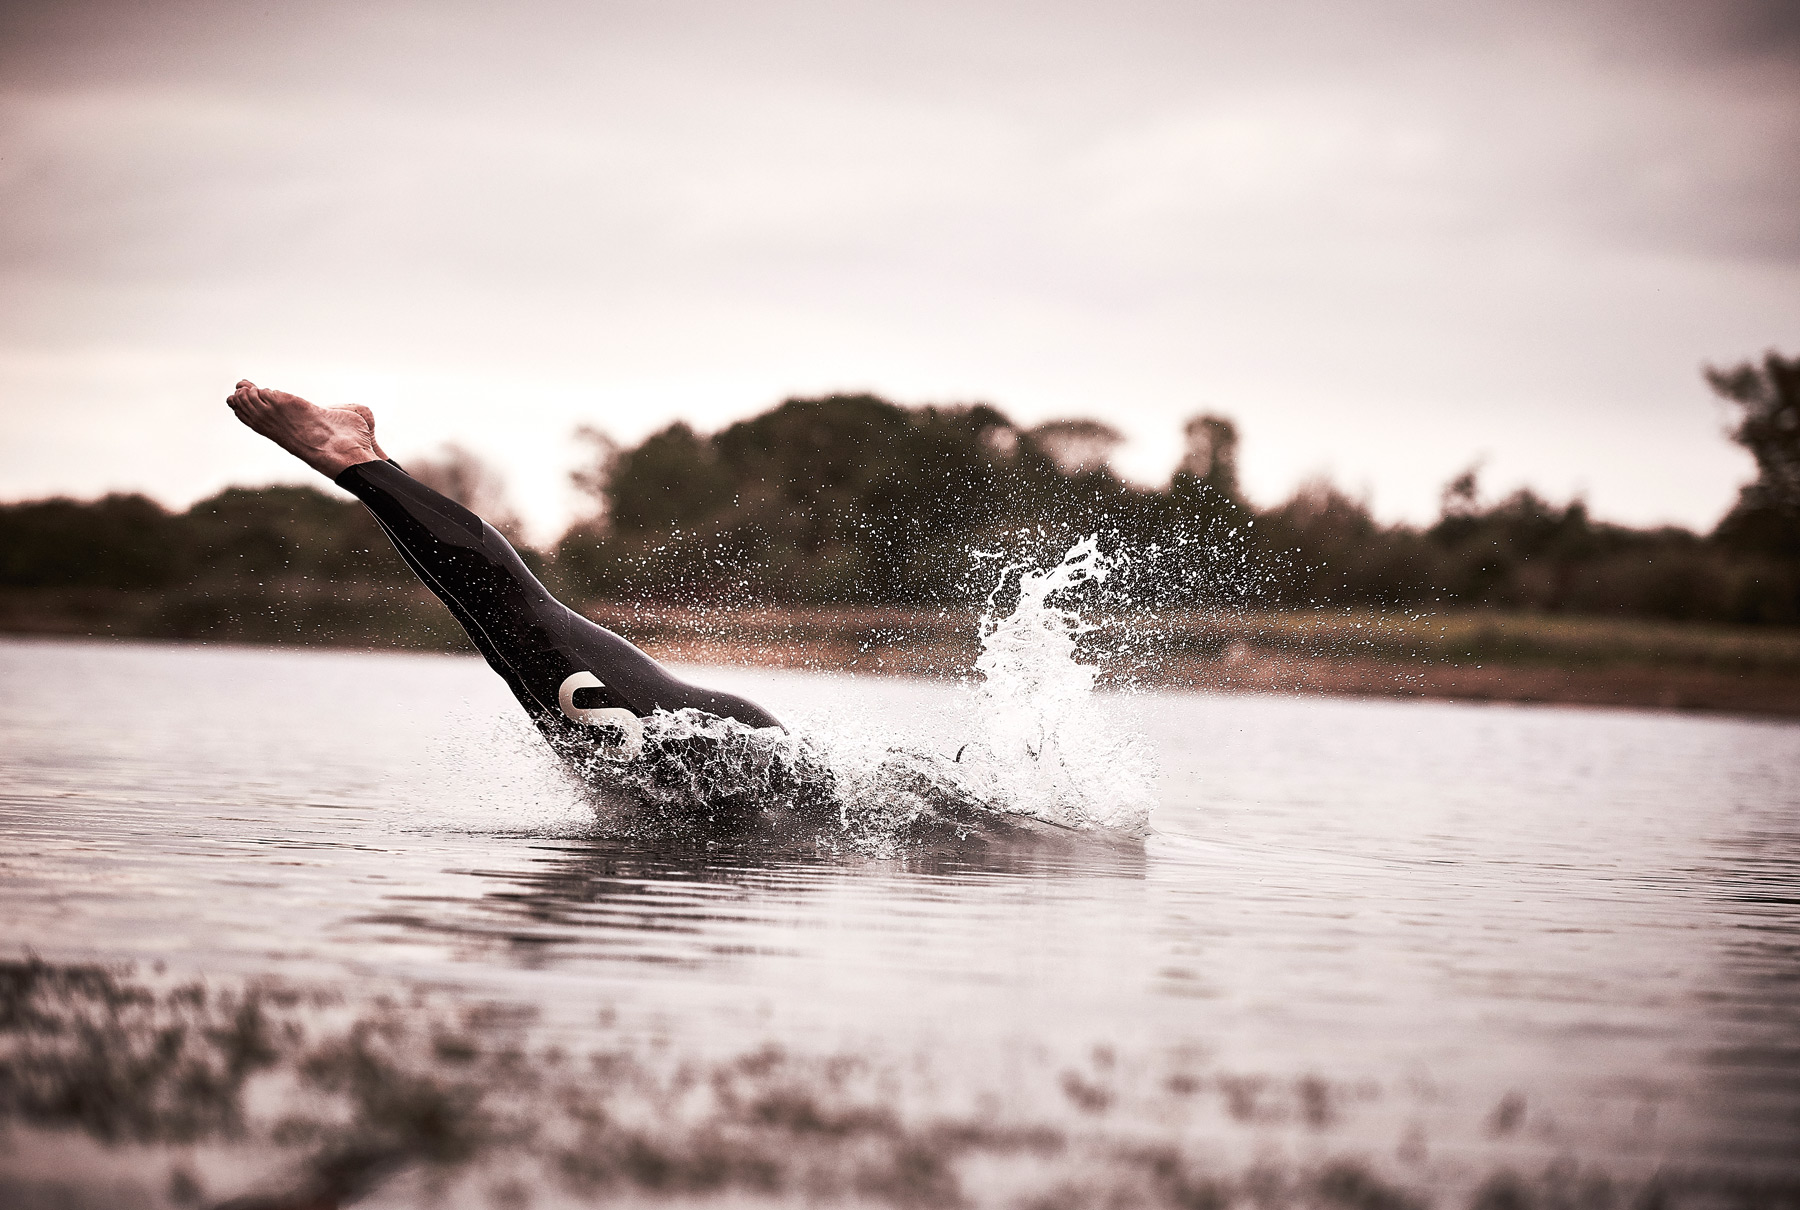 A man dives into open water